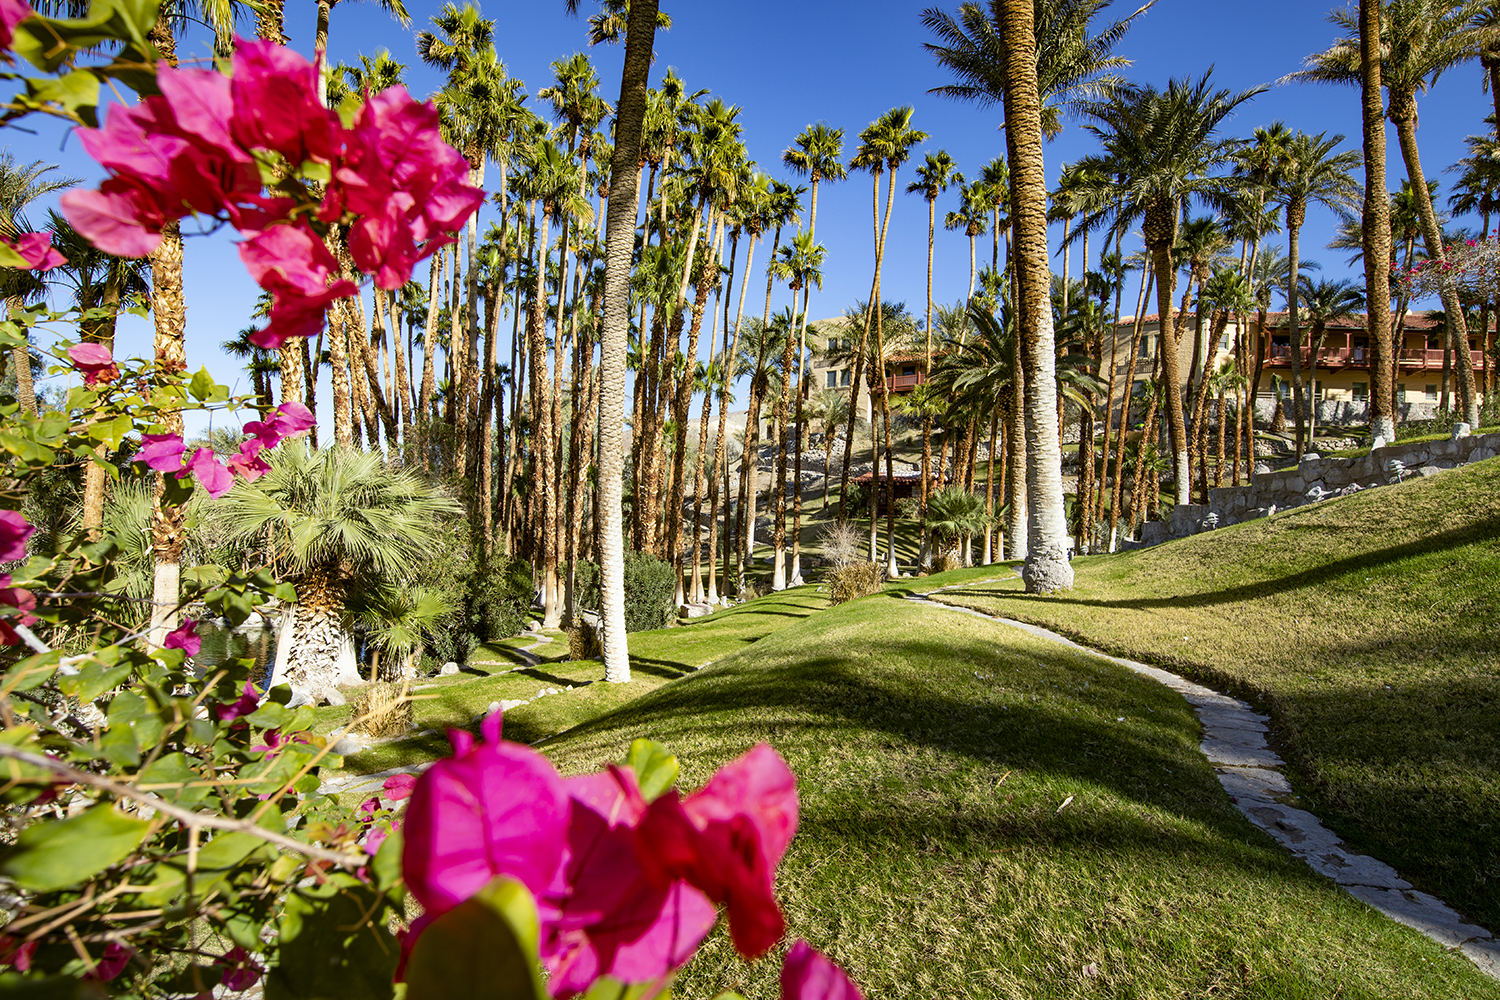 The beautiful gardens and grounds at The Oasis at Death Valley.